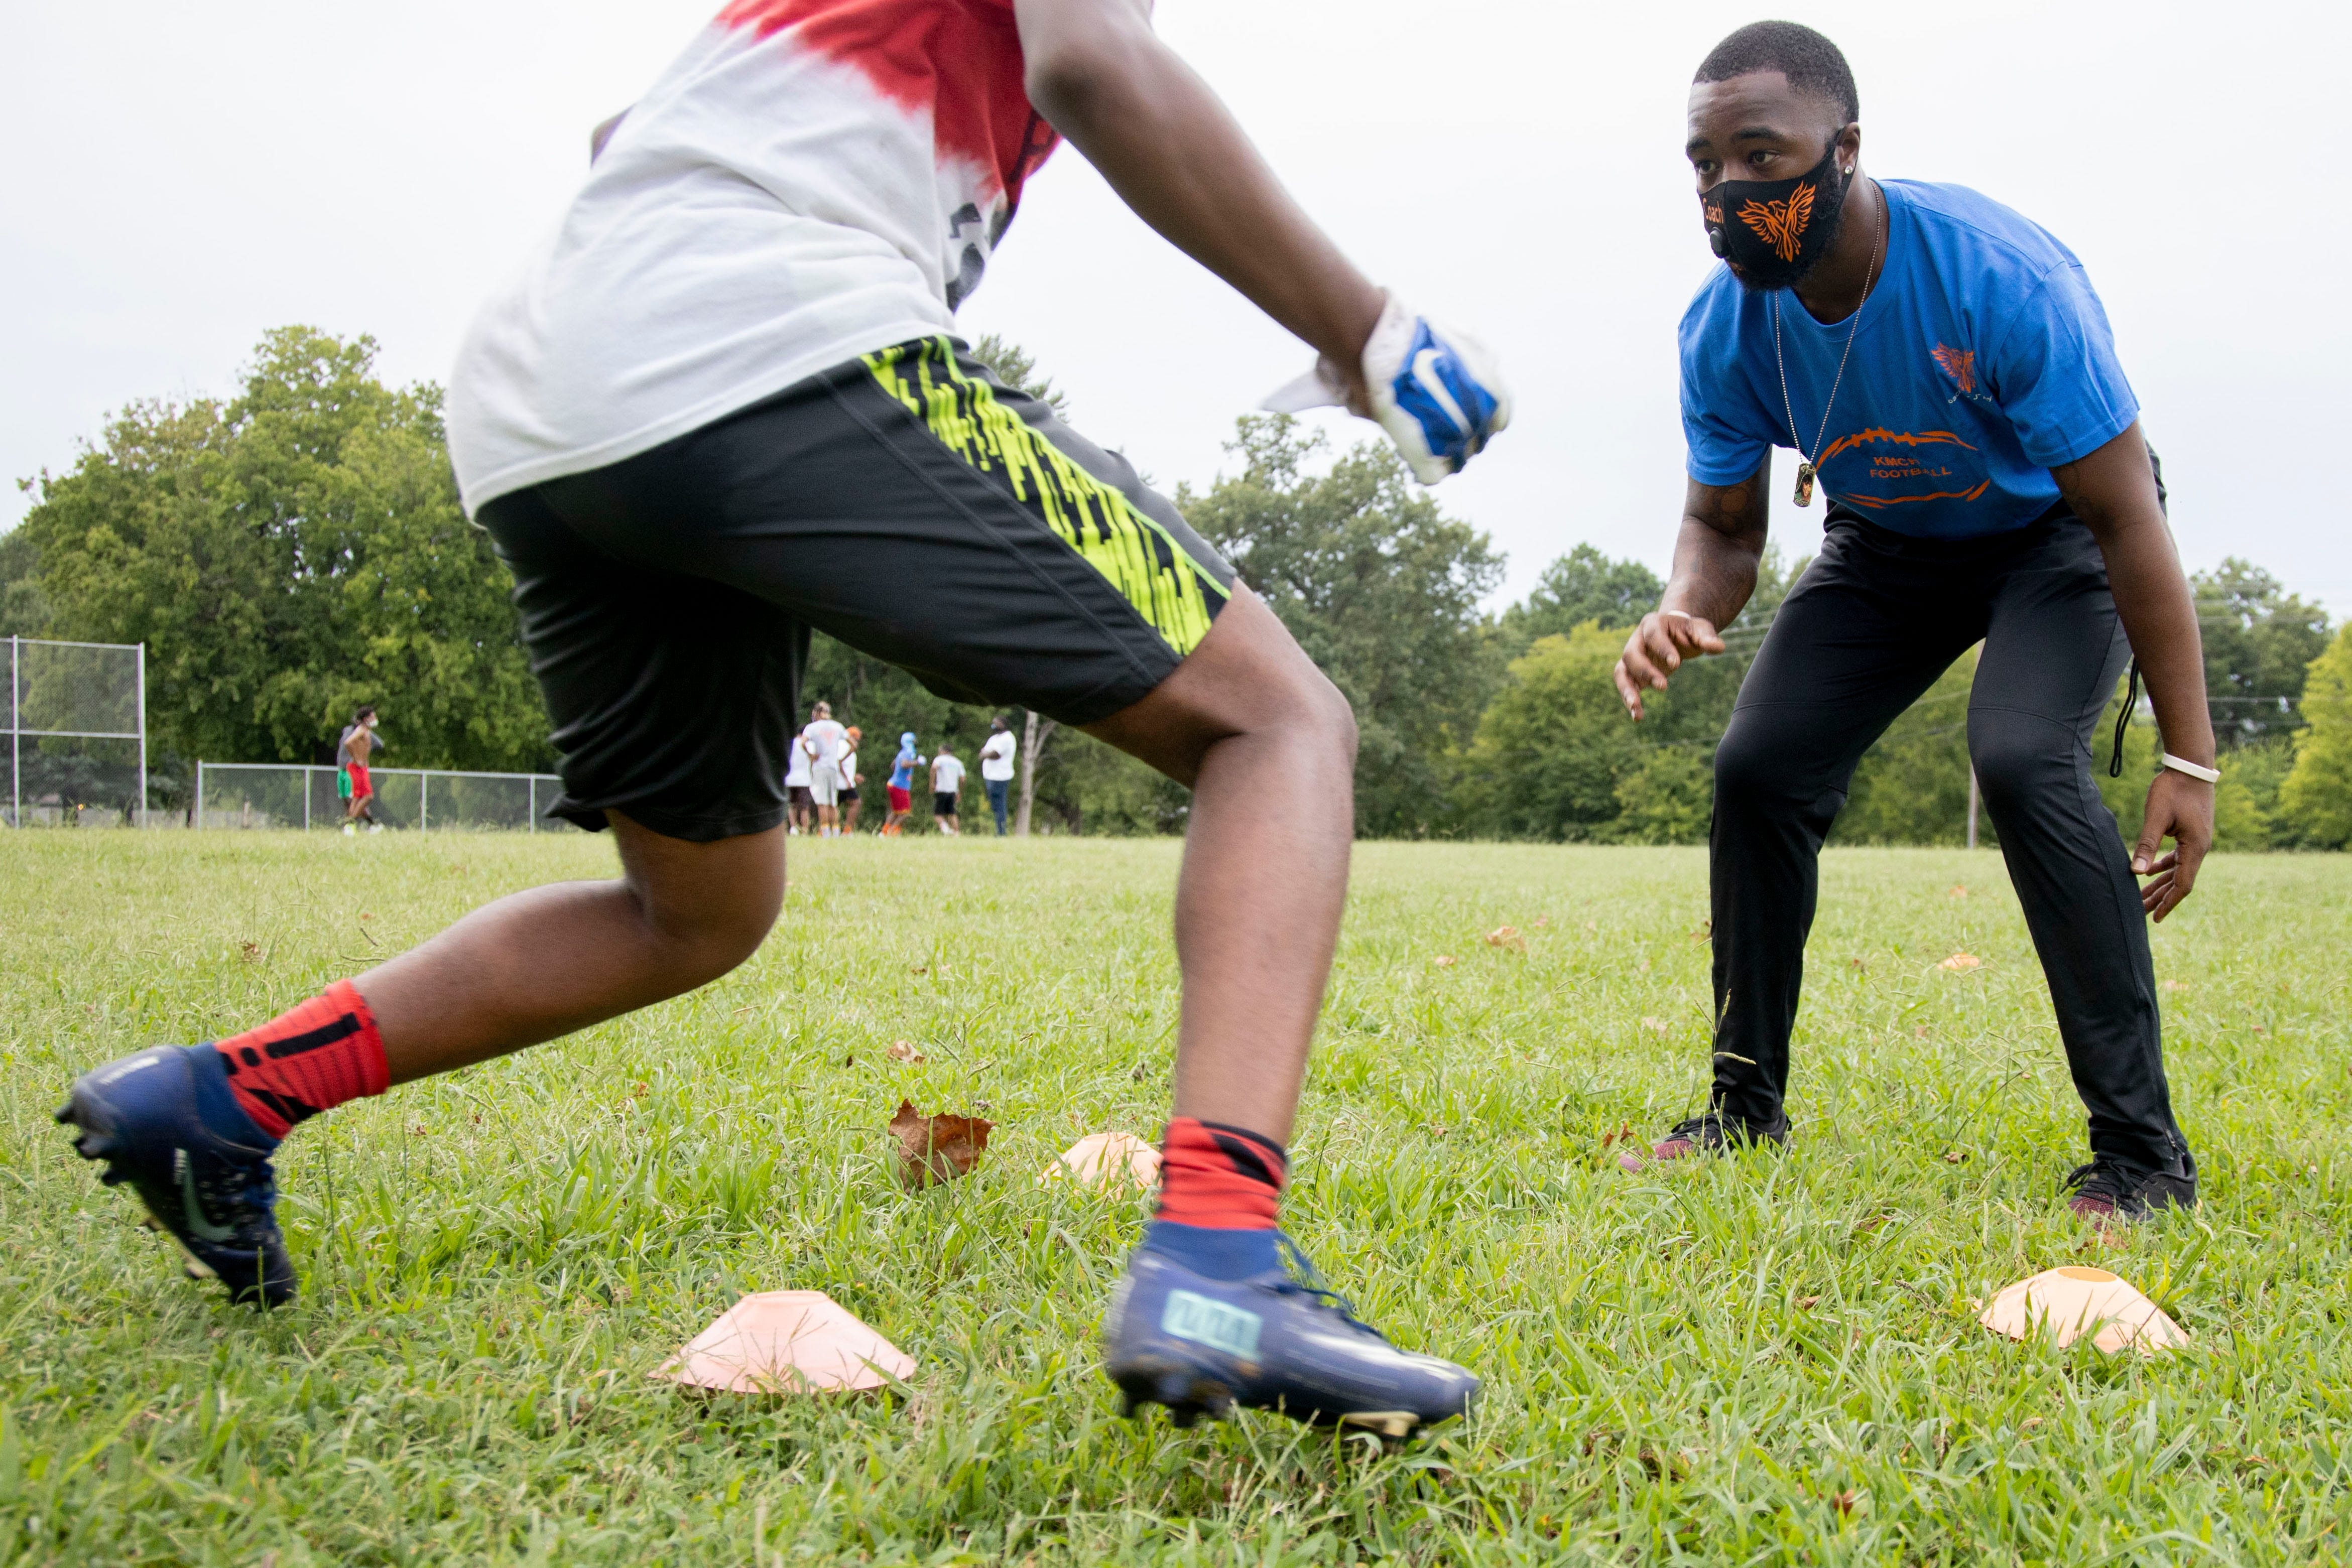 Football coach T.J. Ayers (right) guides Melikah Stokes, 14, through a conditioning drill Tuesday, Sept. 1, 2020, at KIPP Memphis Collegiate High School.